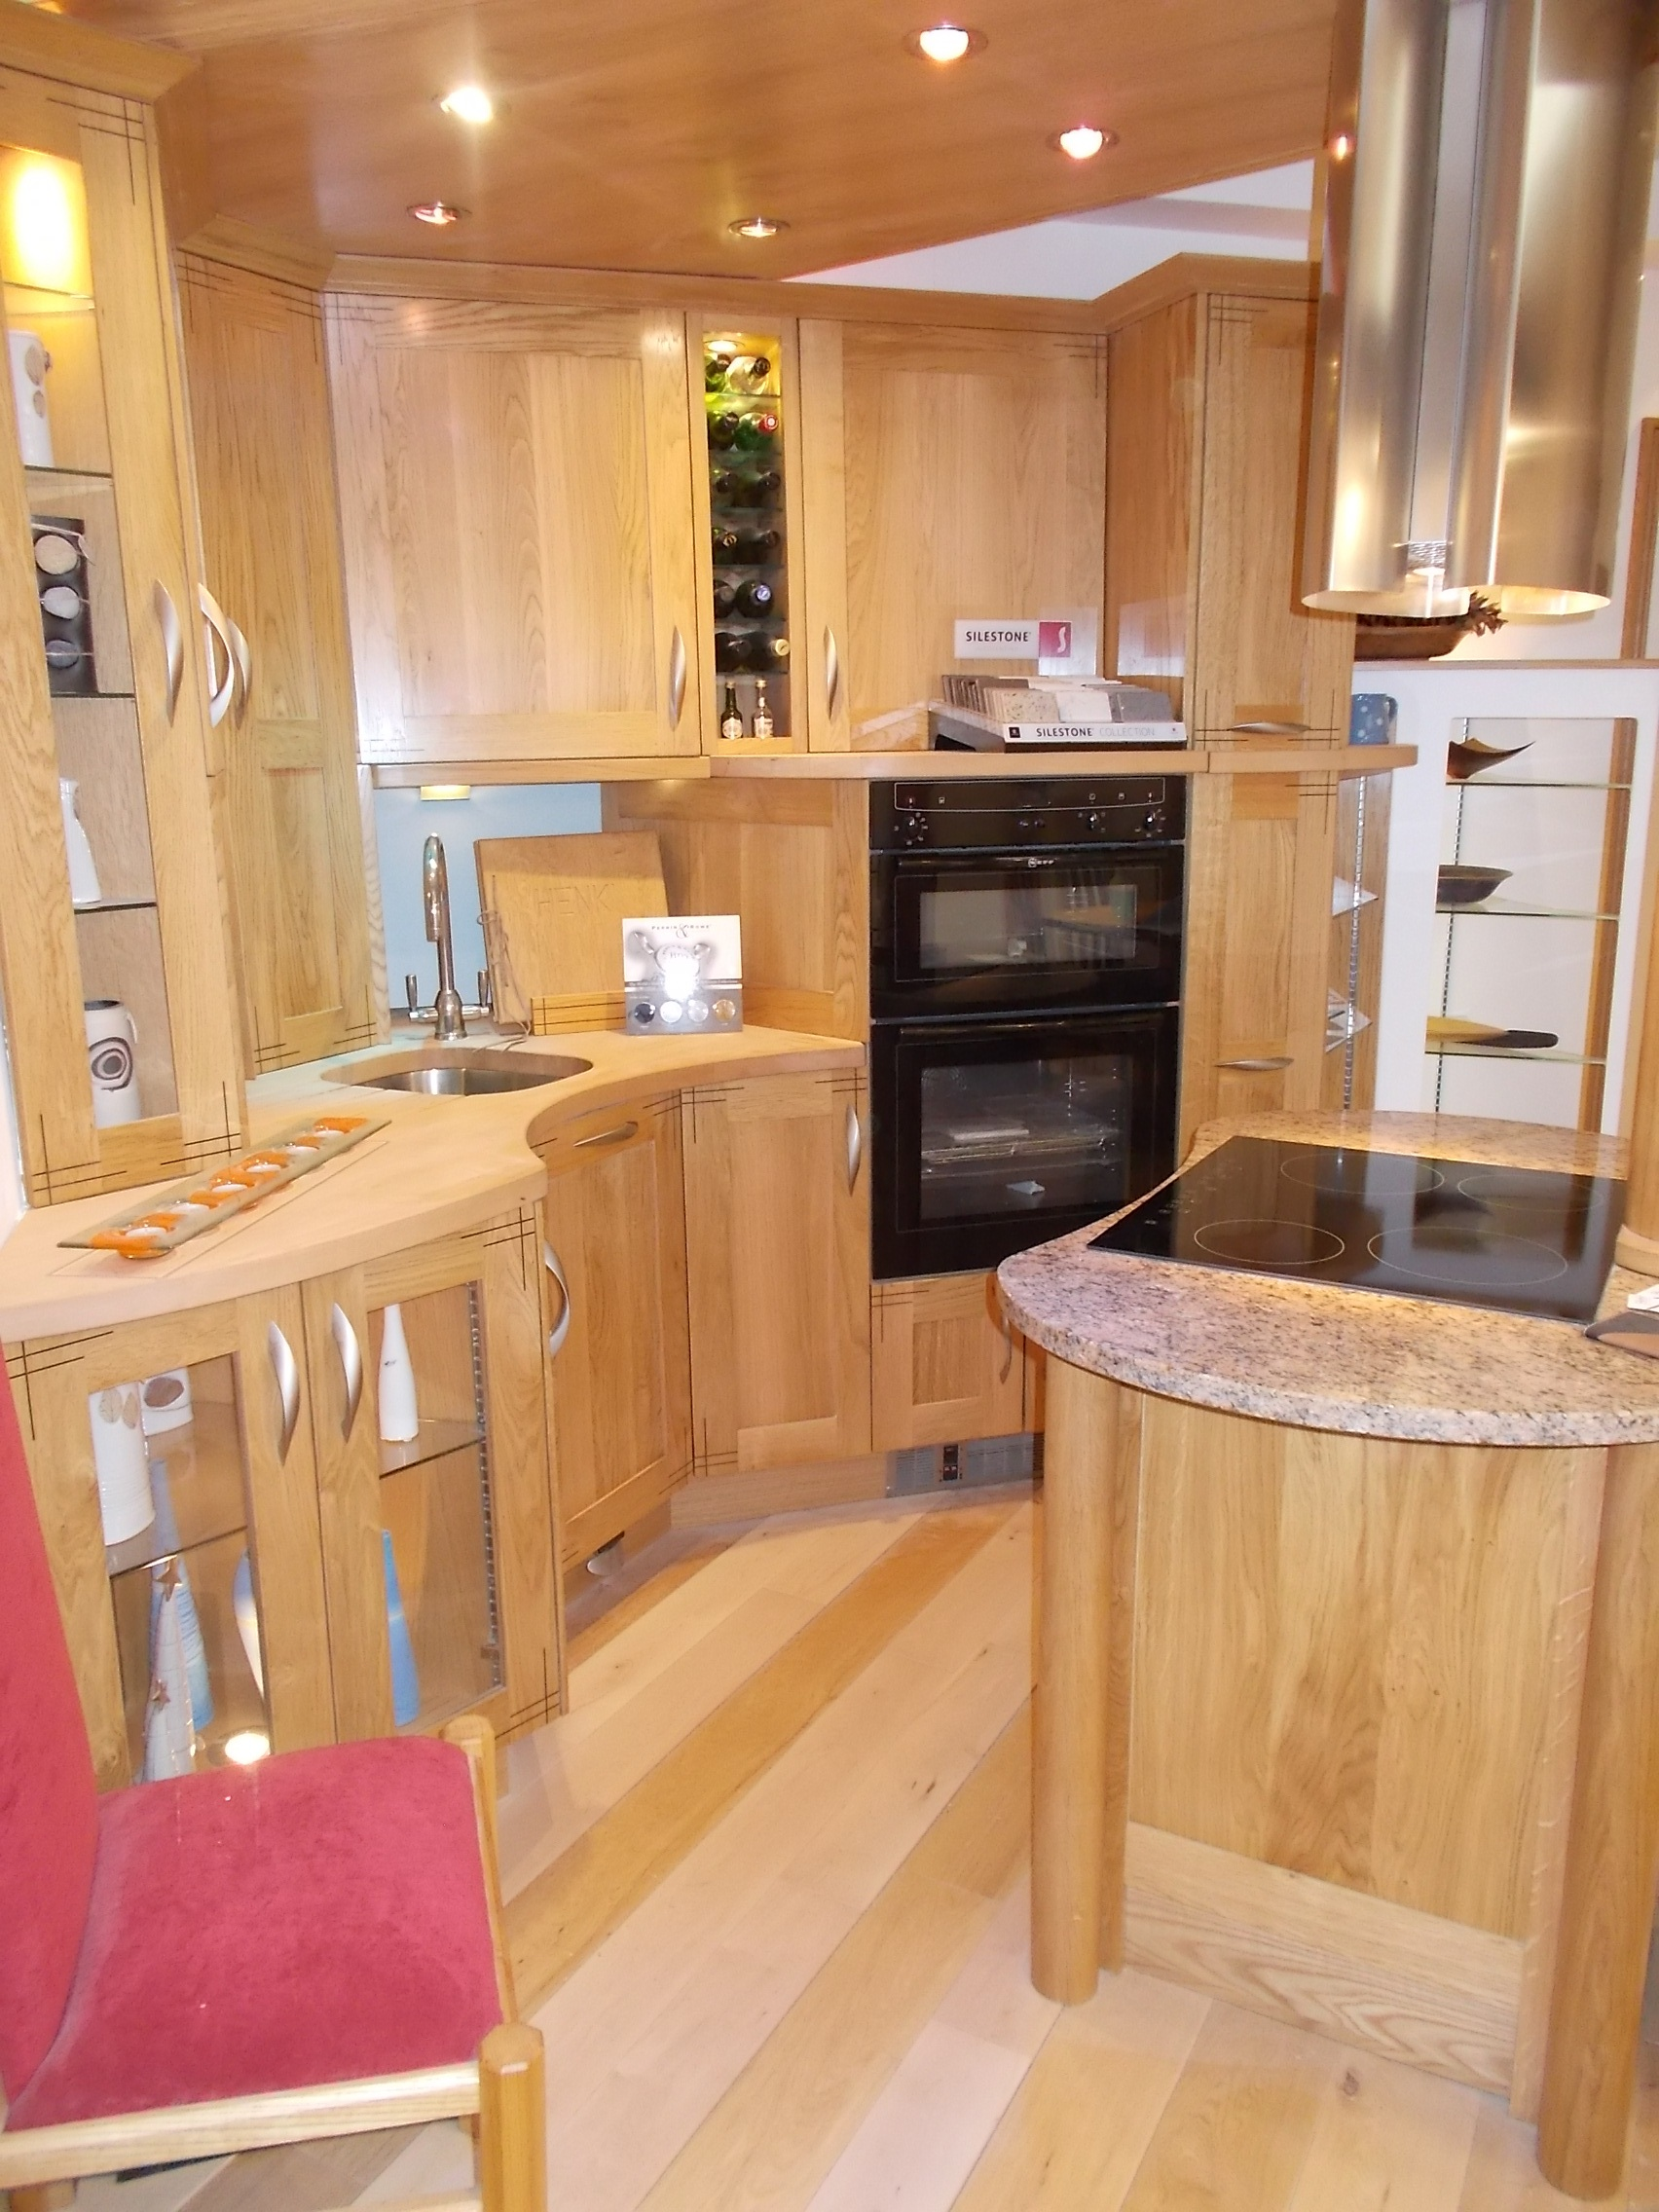 Oak kitchen with maple worktop